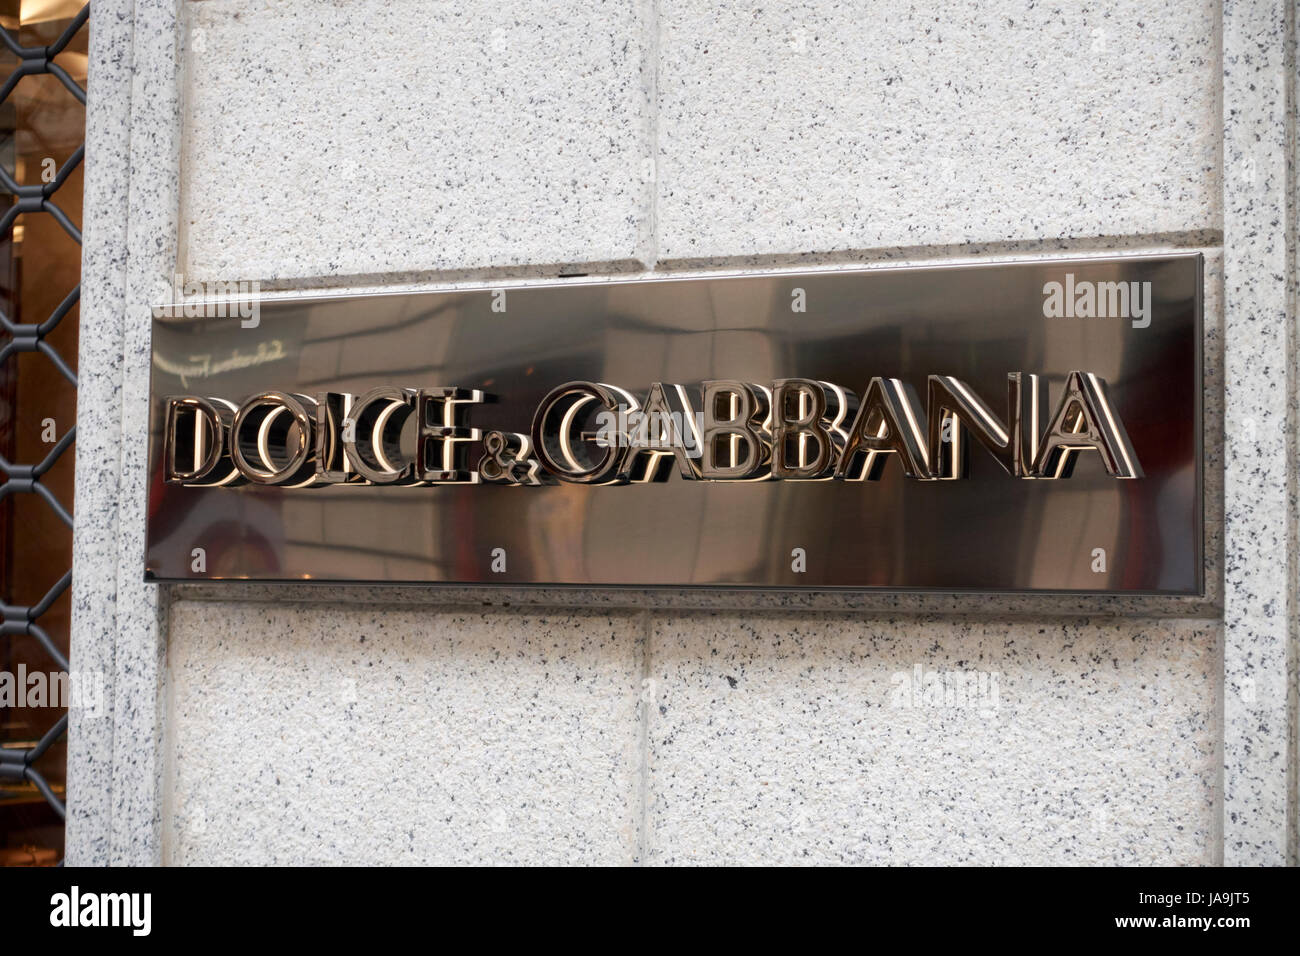 Dolce & Gabbana logo emblem on the facade of the store in Milnao, Italy - Stock Image